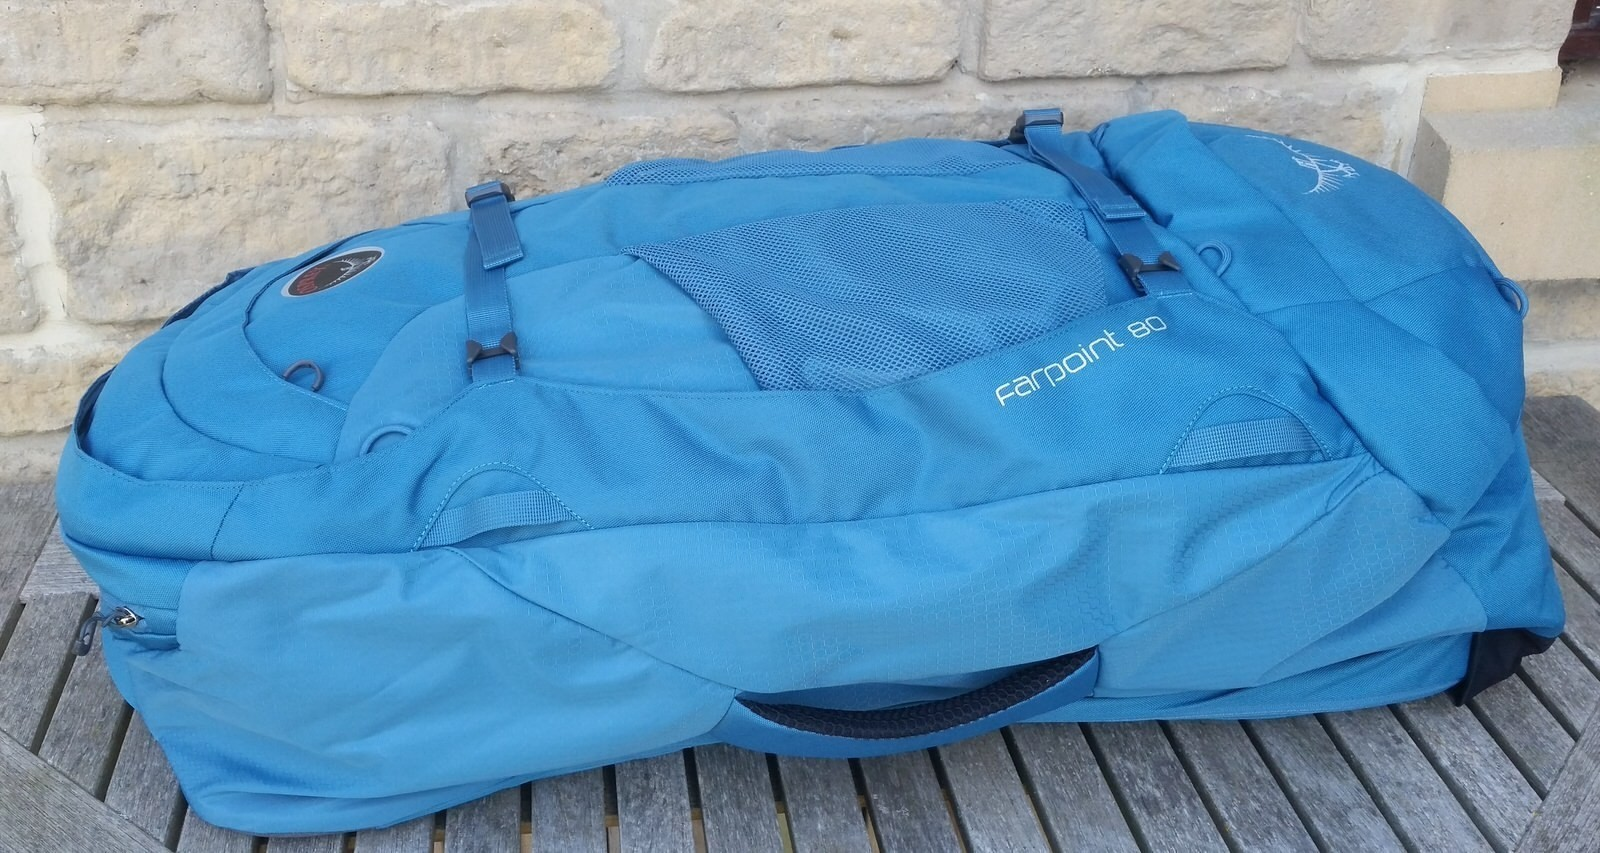 Travel gear reviews: get your kit on